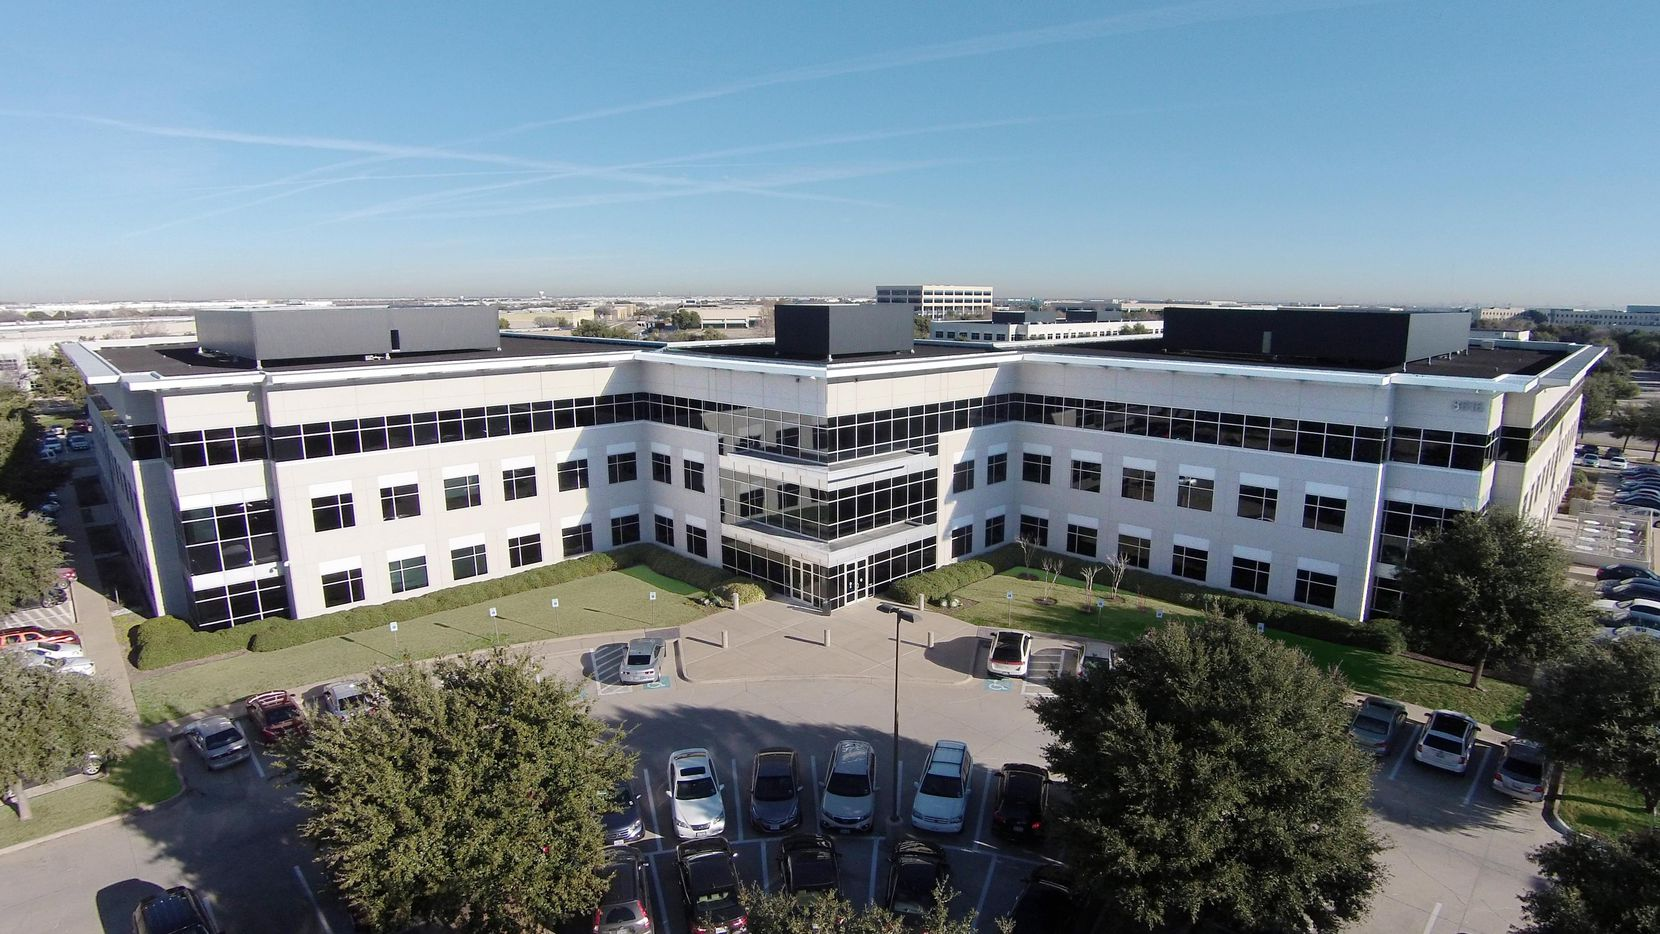 Rushmore Loan Management Services is moving to the Freeport Business Center in Irving.